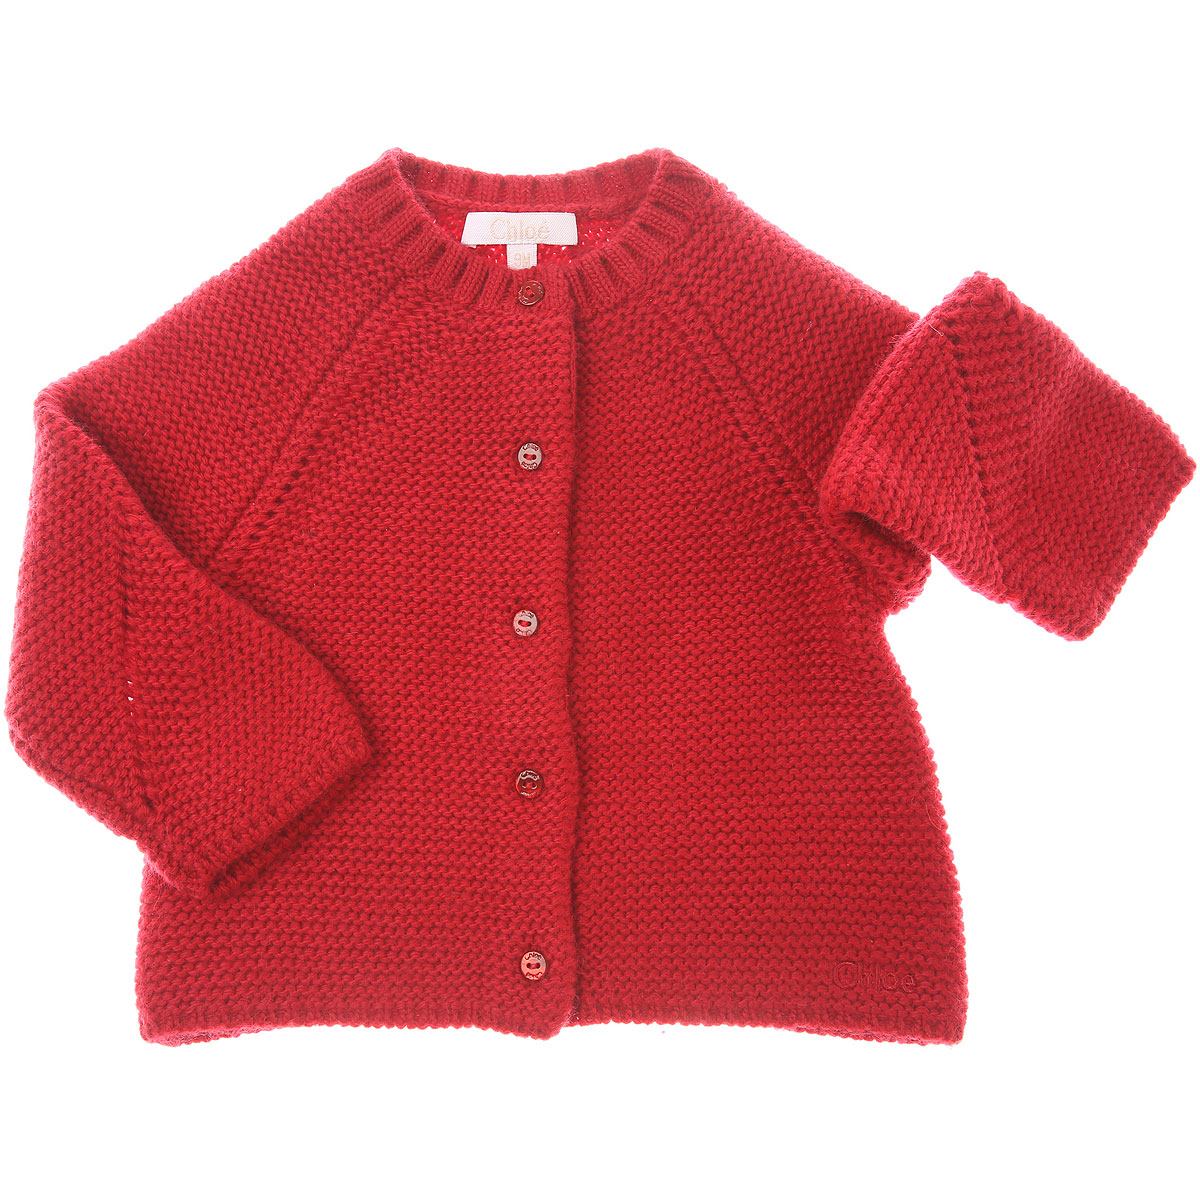 Chloe Baby Sweaters for Girls On Sale, Red, polyamide, 2019, 12M 18M 2Y 6M 9M